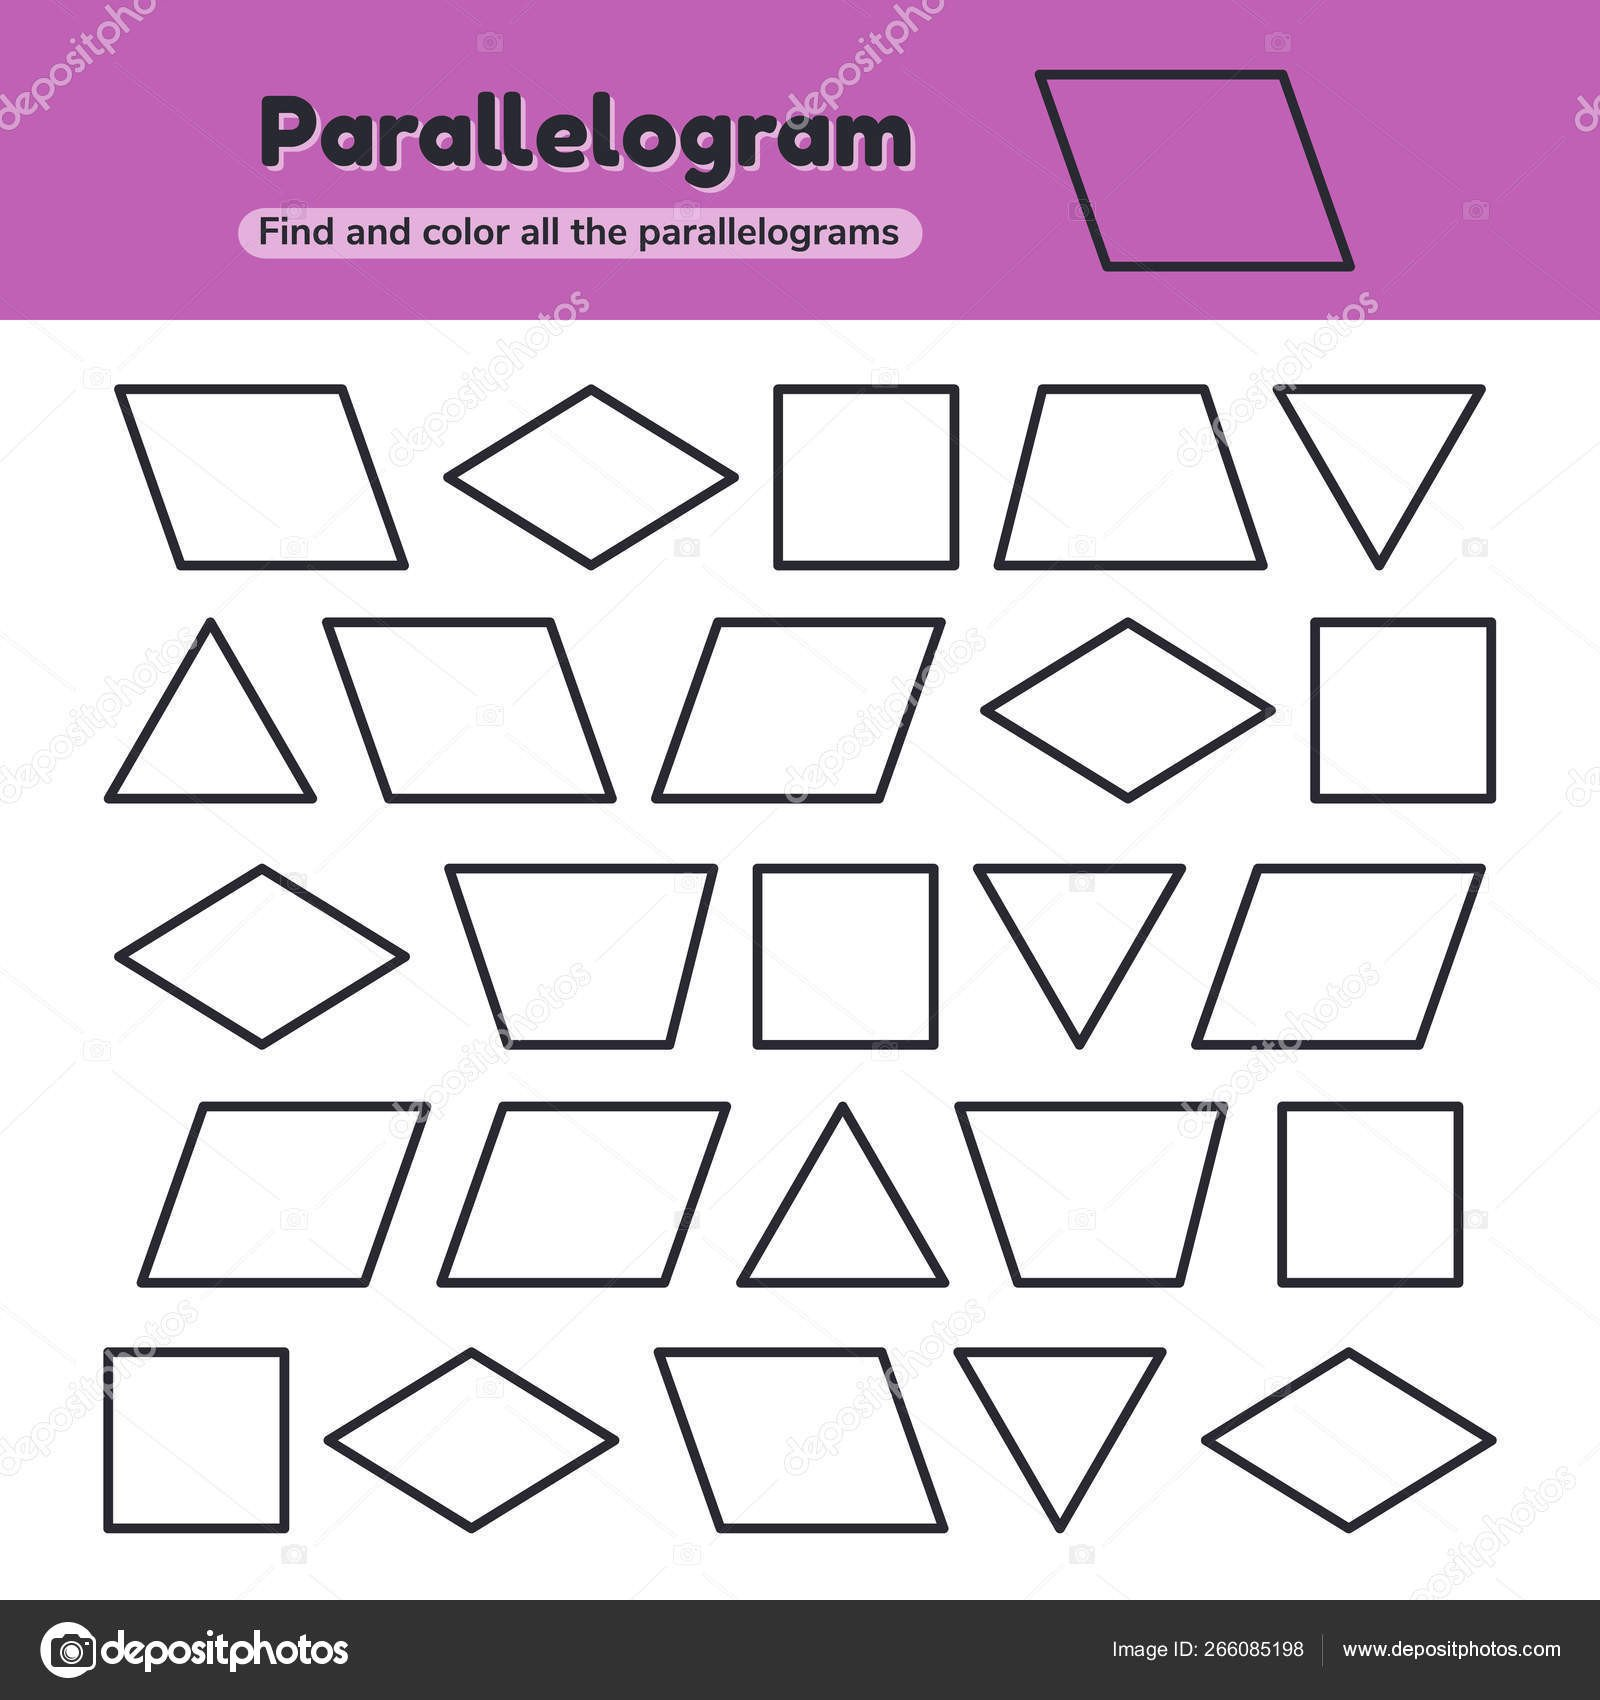 Triangle Worksheet for Kindergarten Educational Worksheet for Kids Kindergarten Preschool and School Age Geometric Shapes Rhombus Parallelogram Triangle Square Trapezoid Find and